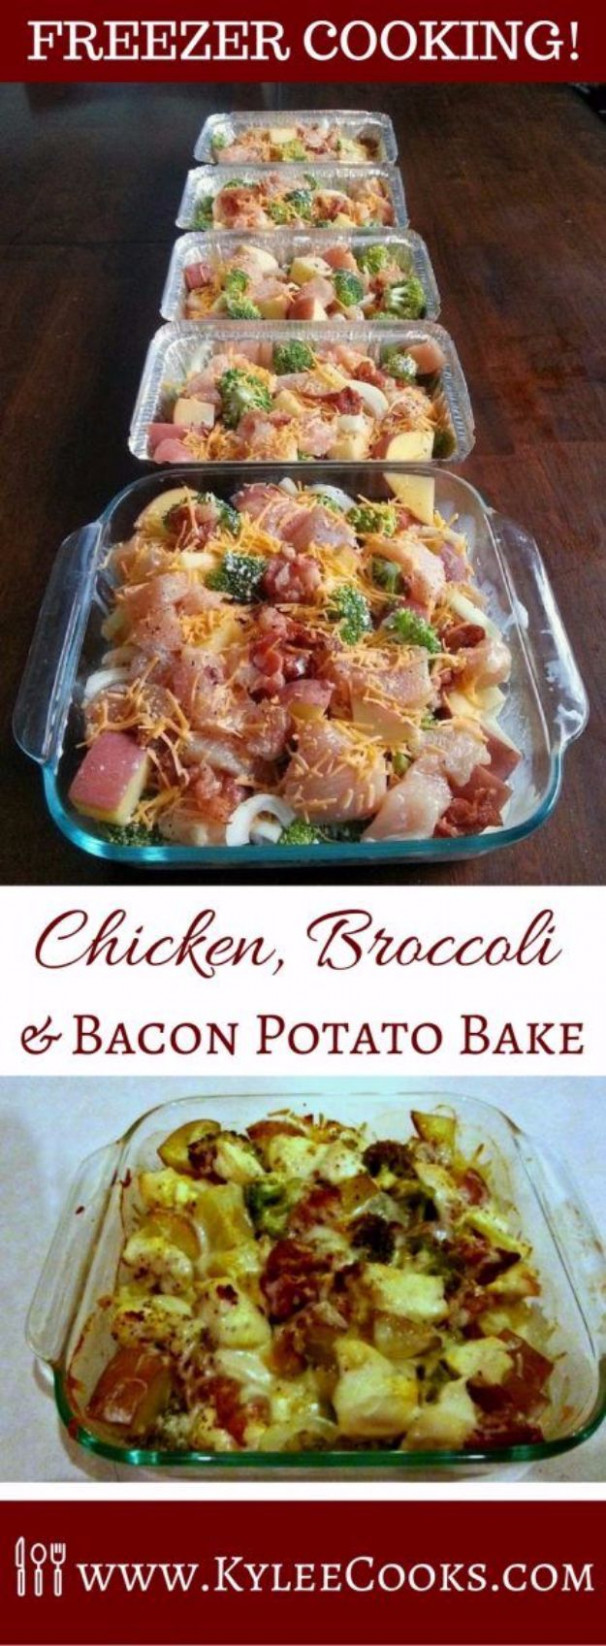 37 Healthy Crockpot Recipes To Make and Freeze Ahead of Time - healthy recipes to freeze